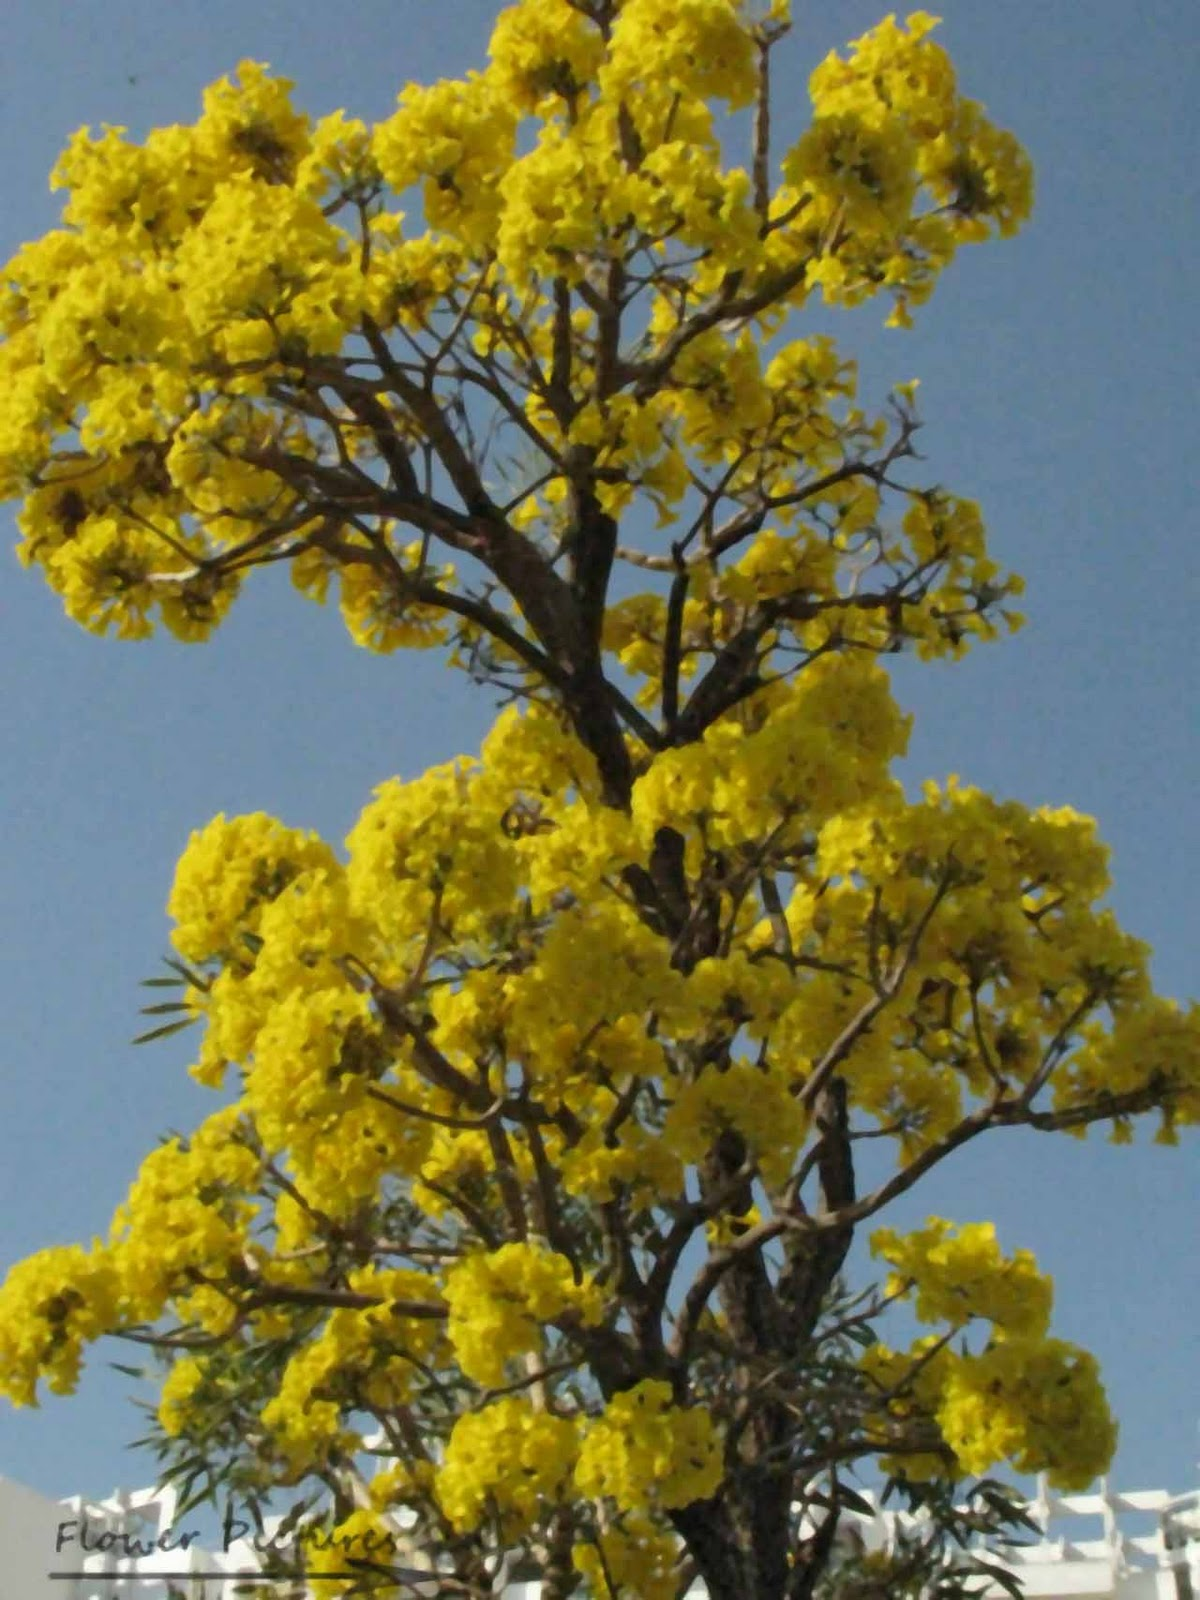 Trees that bloom yellow flowers home furniture design indian tree flowers images galleries with a bite trees that bloom yellow flowers mightylinksfo Gallery